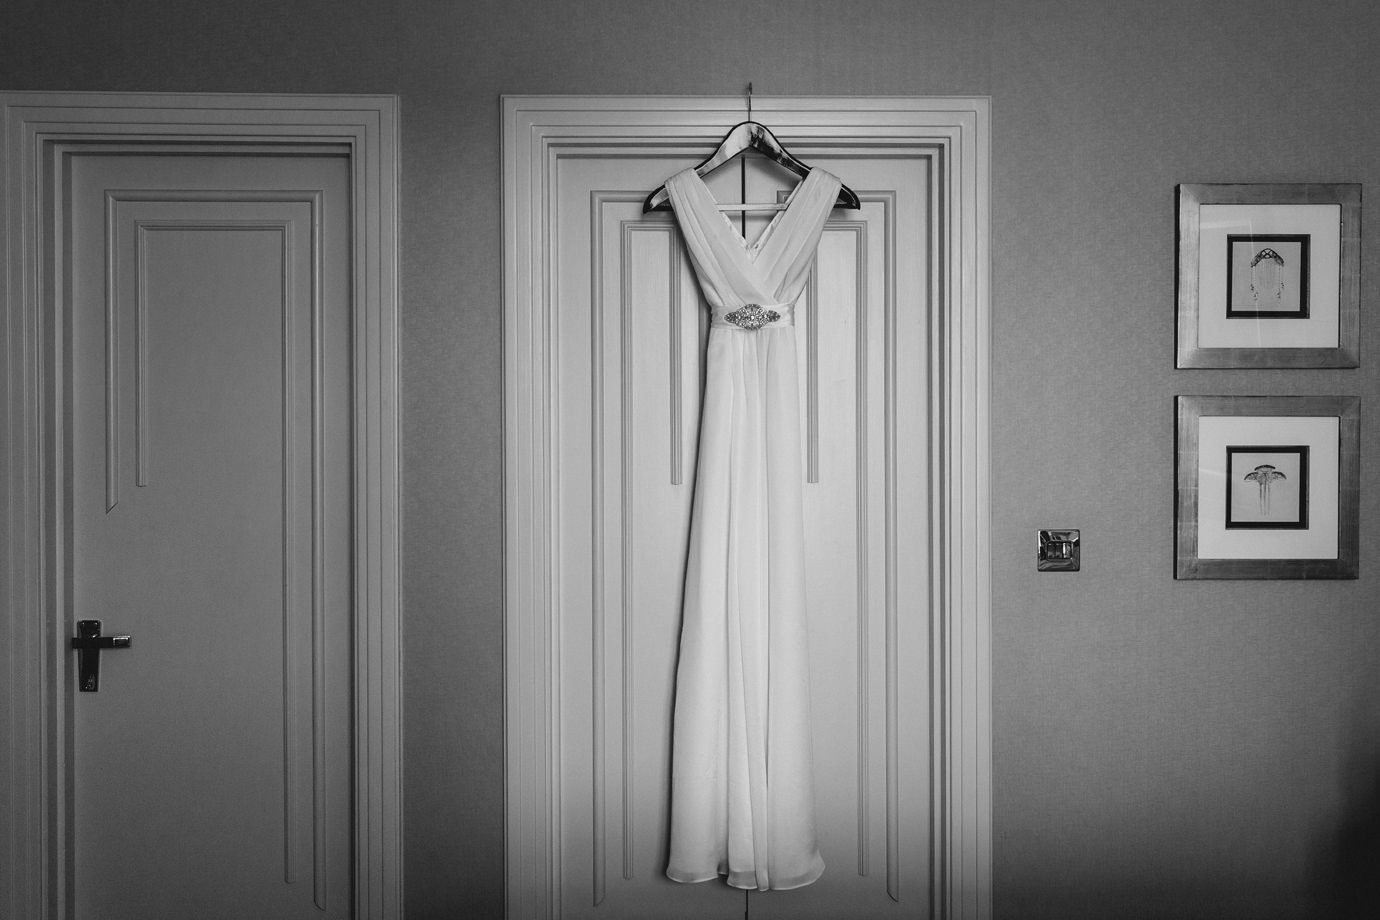 Beautiful Tiffany Rose maternity wedding dress against an art deco Savoy hotel room